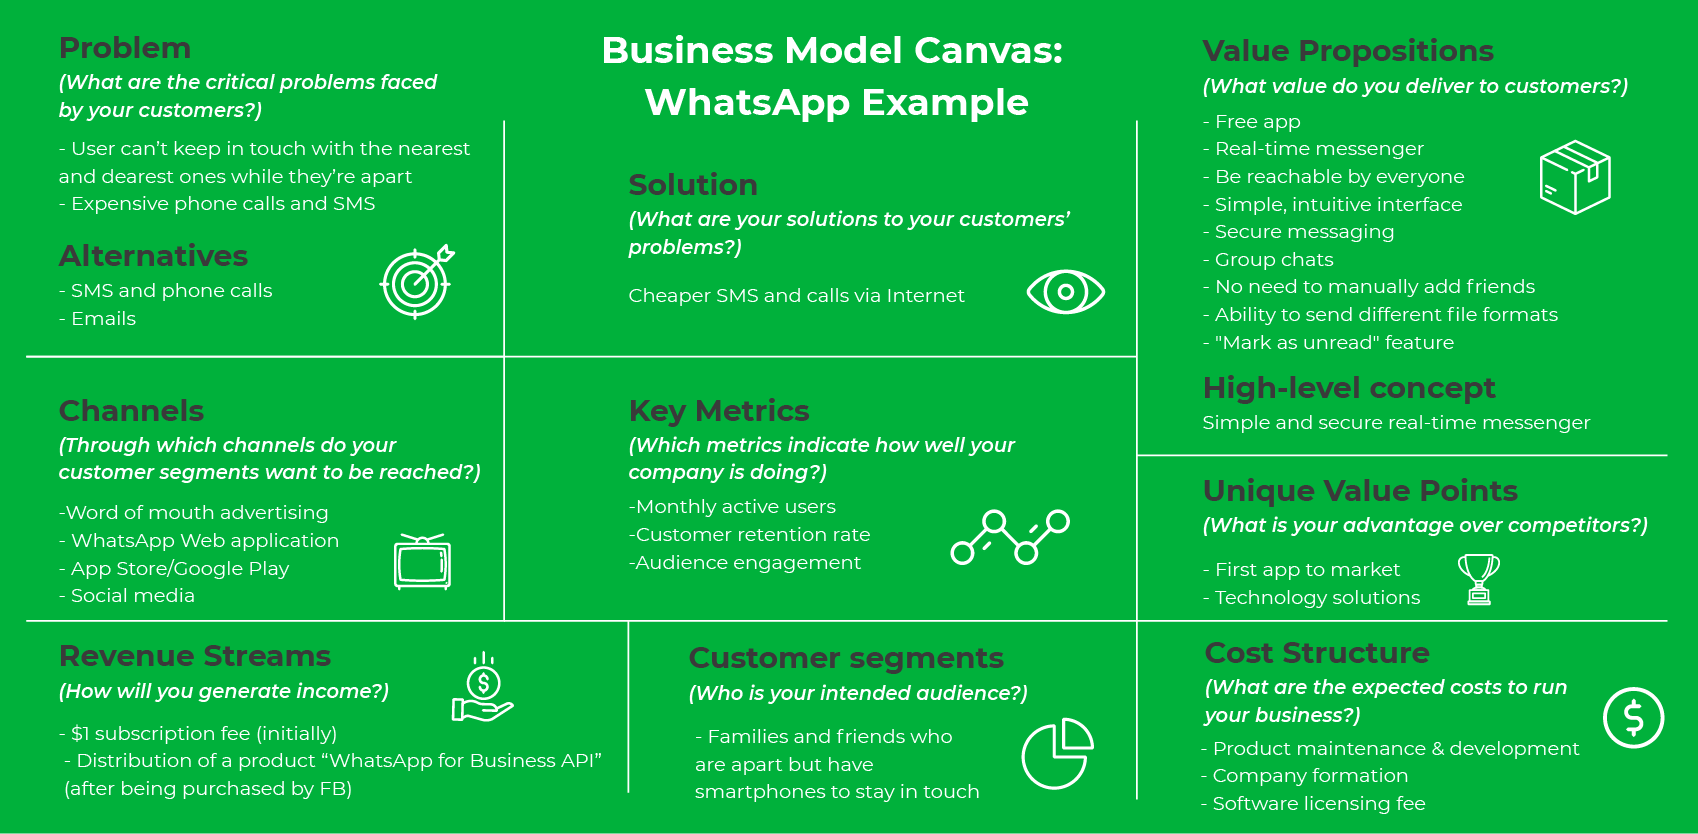 Business Model Canvas: WhatsApp Example